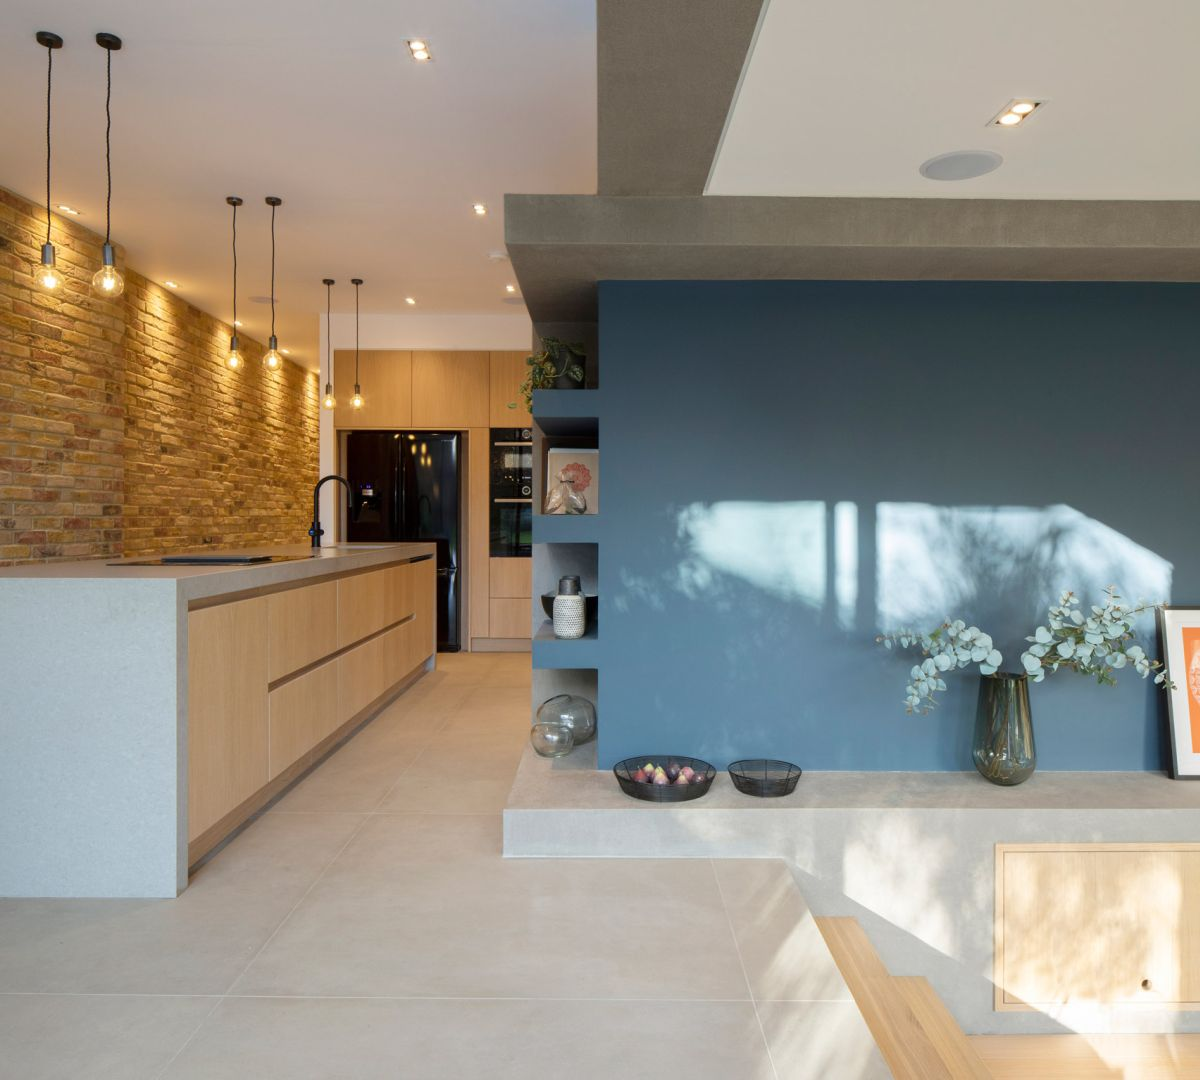 The architects found ways to distinguish the different zones within an open plan space through different floor levels